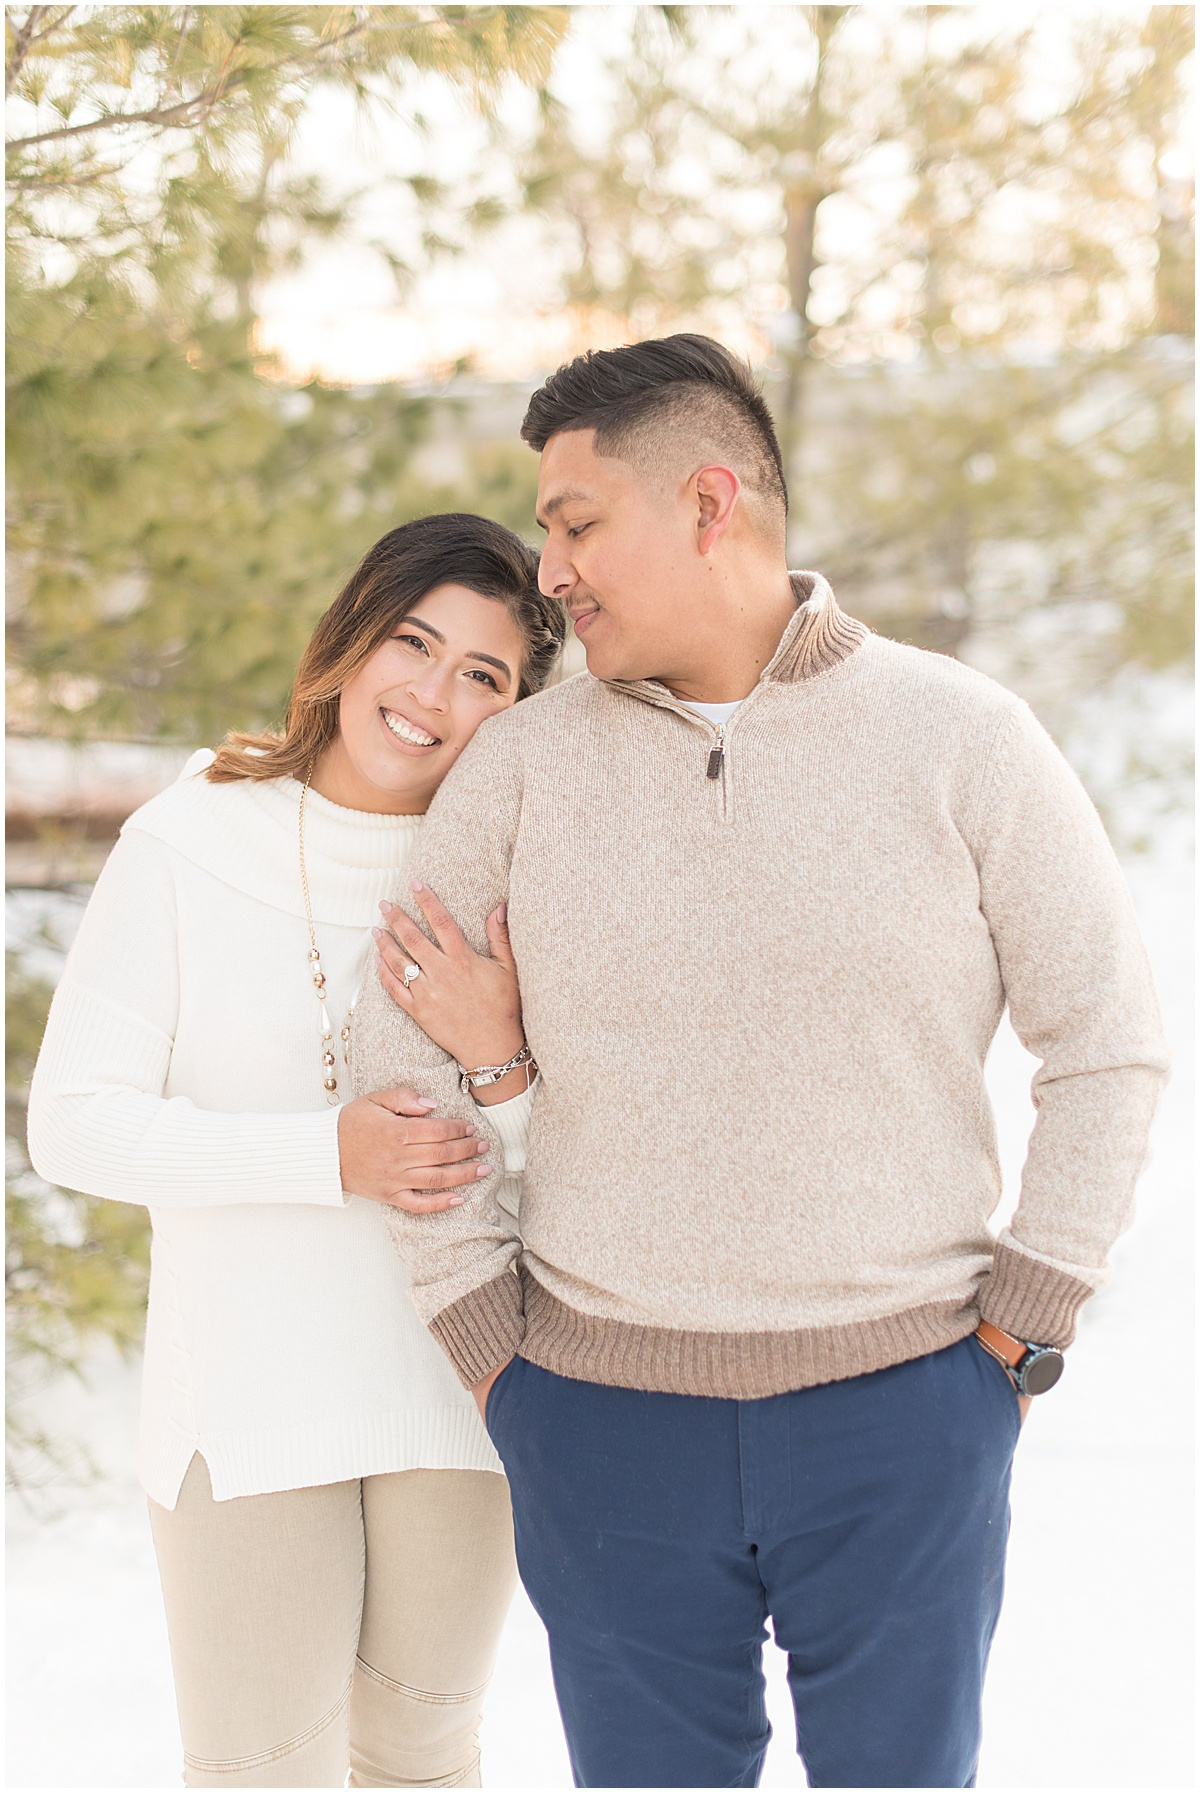 Jose & Carolina - Engagement Photos in Downtown Lafayette Indiana12.jpg